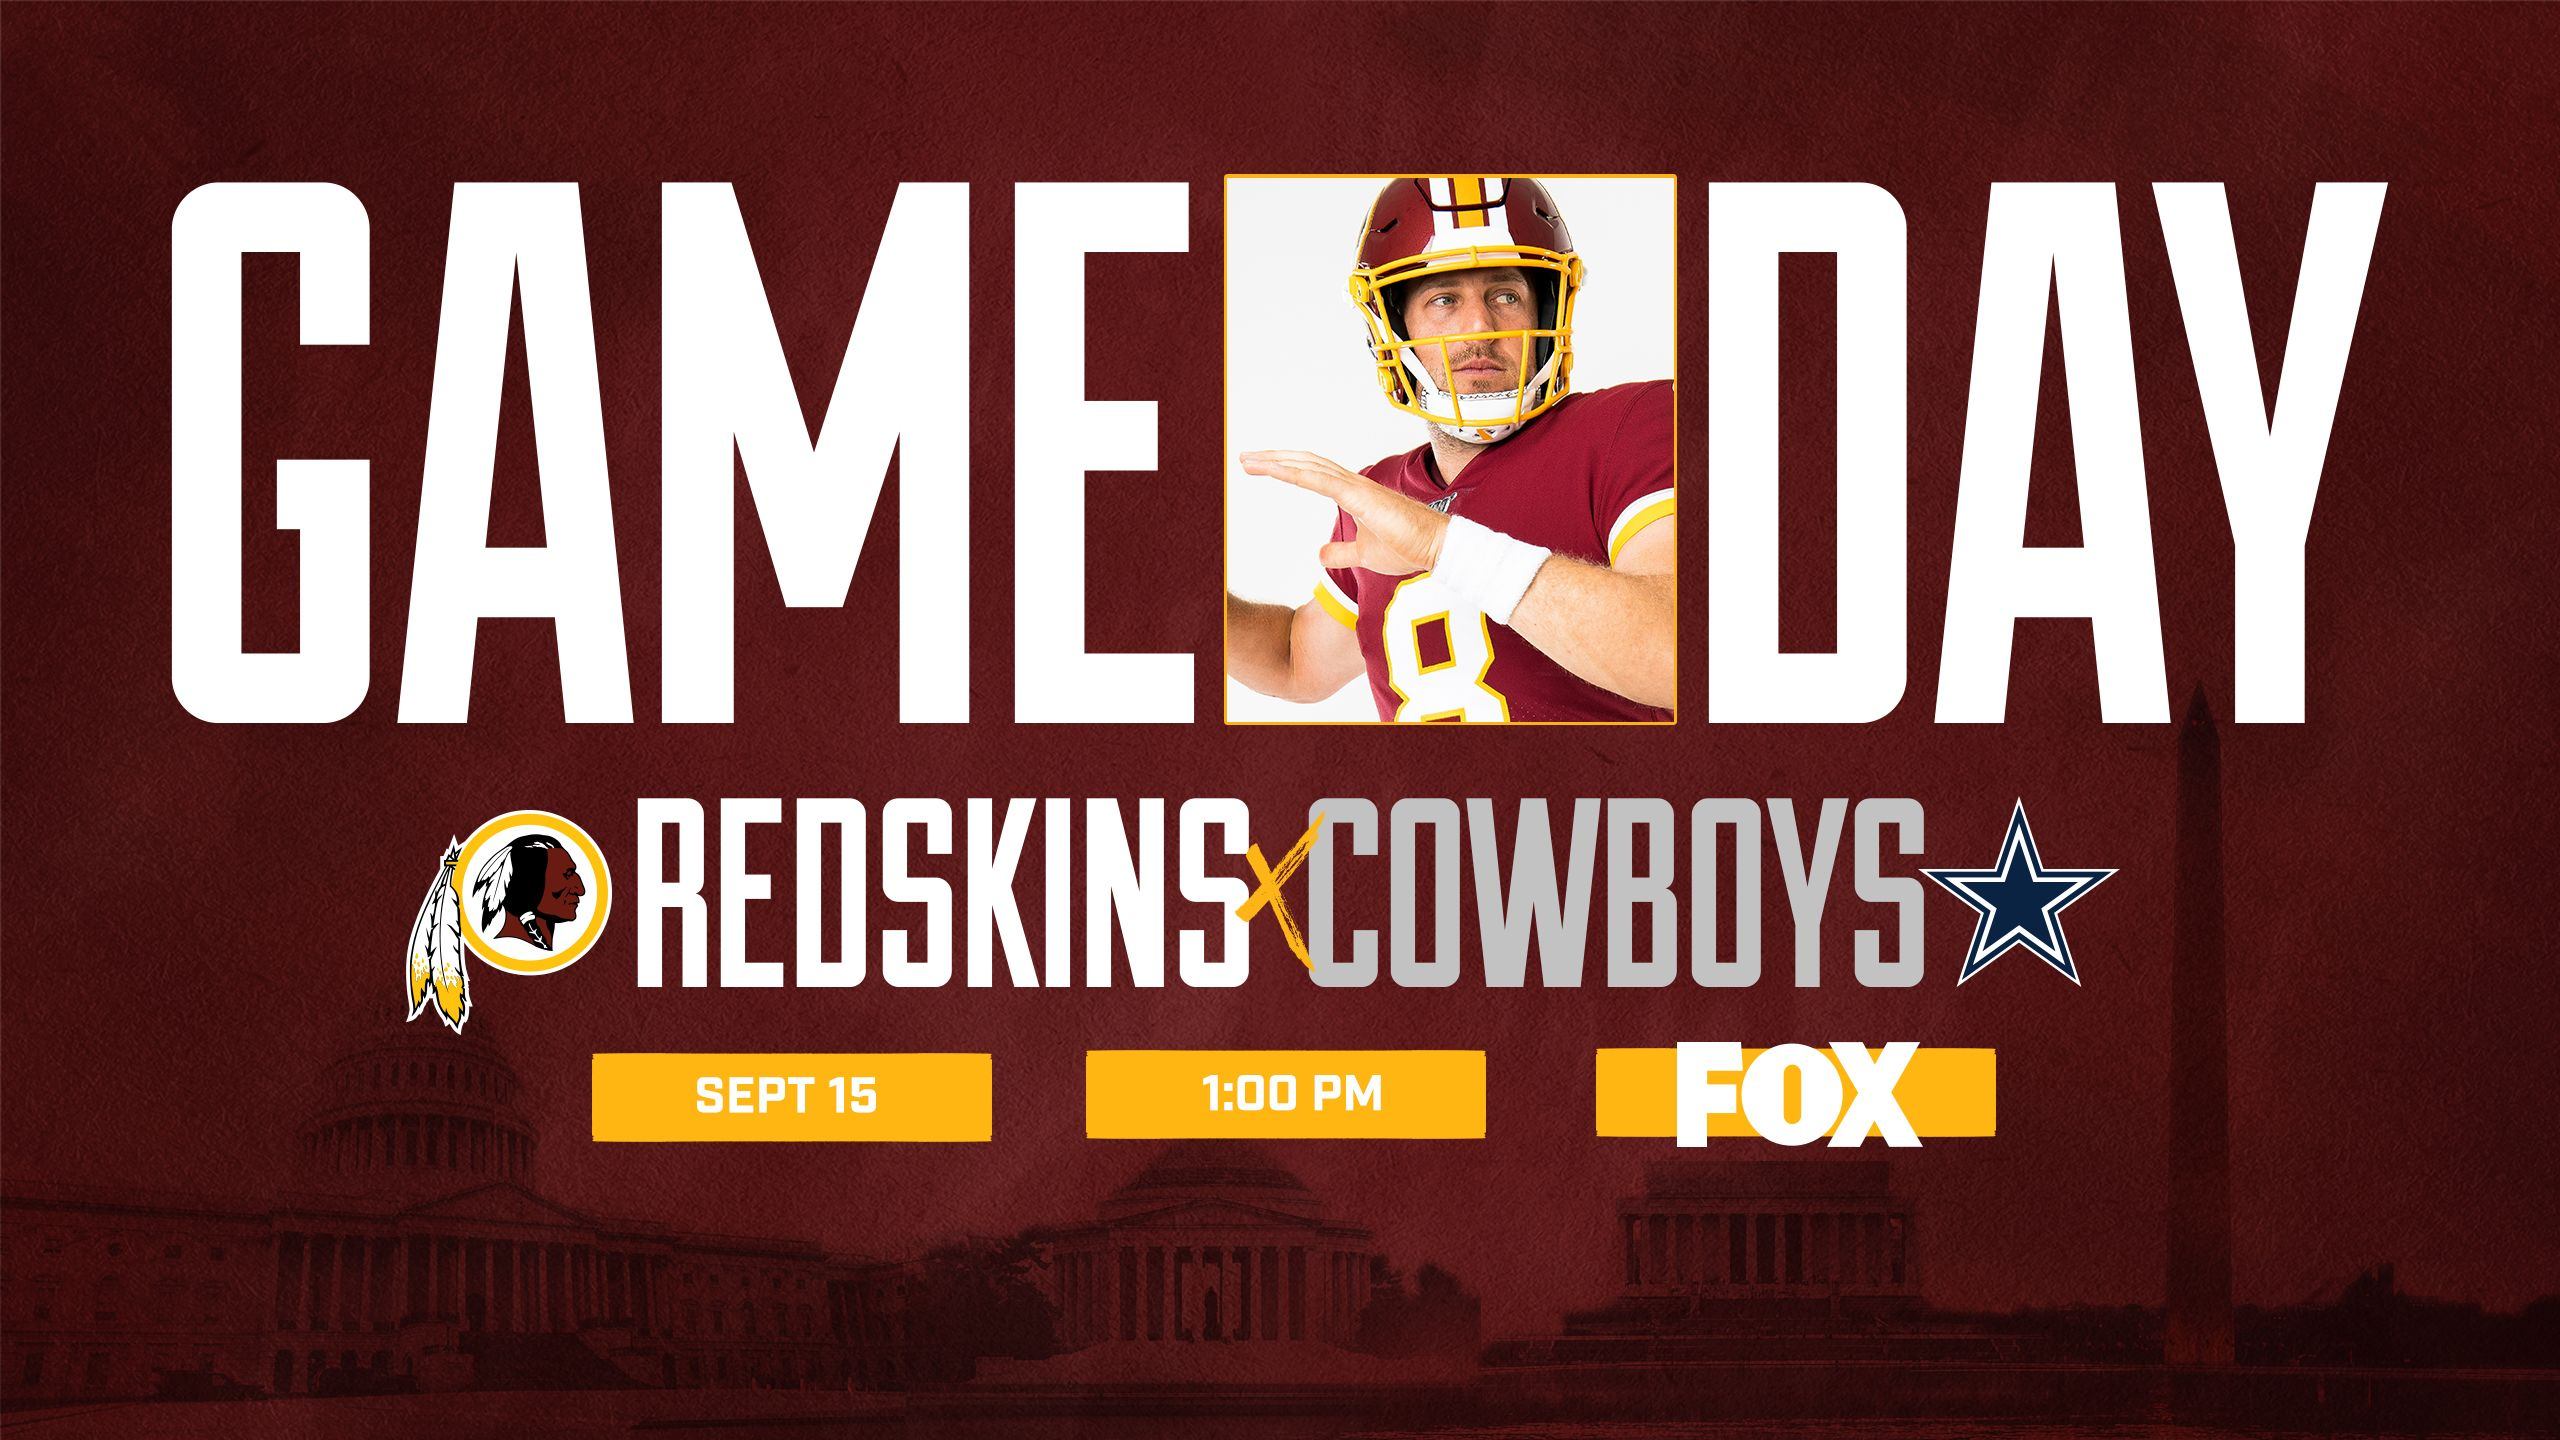 2019-week-2-cowboys-gameday-header